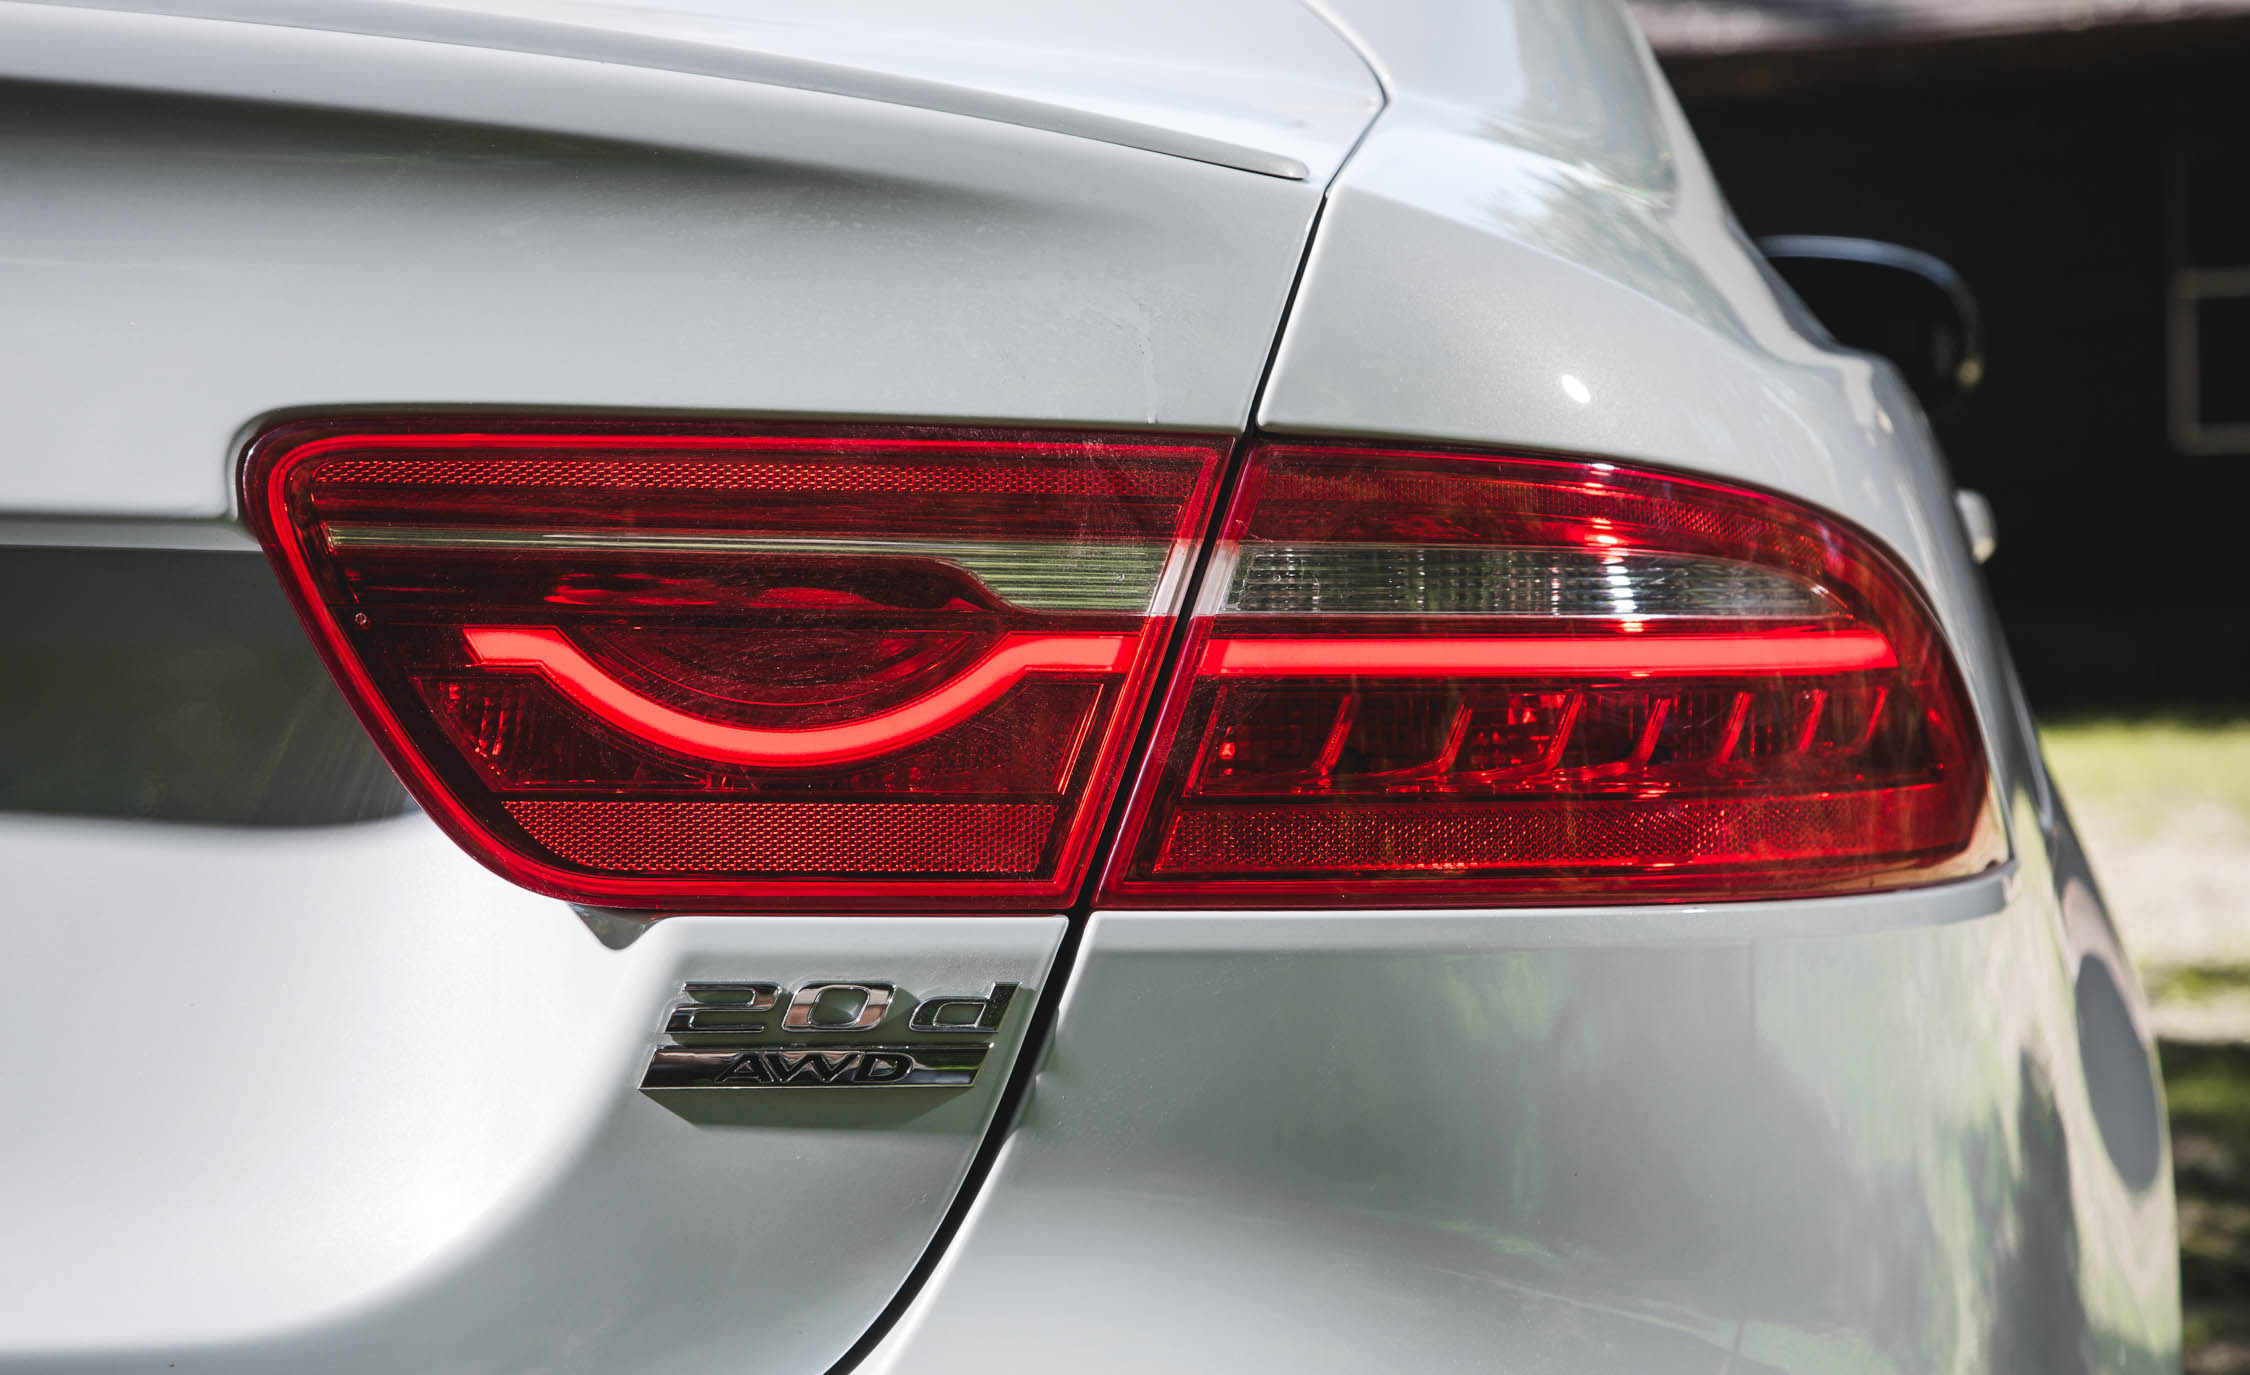 2017 Jaguar Xe White Exterior View Taillight Right Side (Photo 31 of 32)